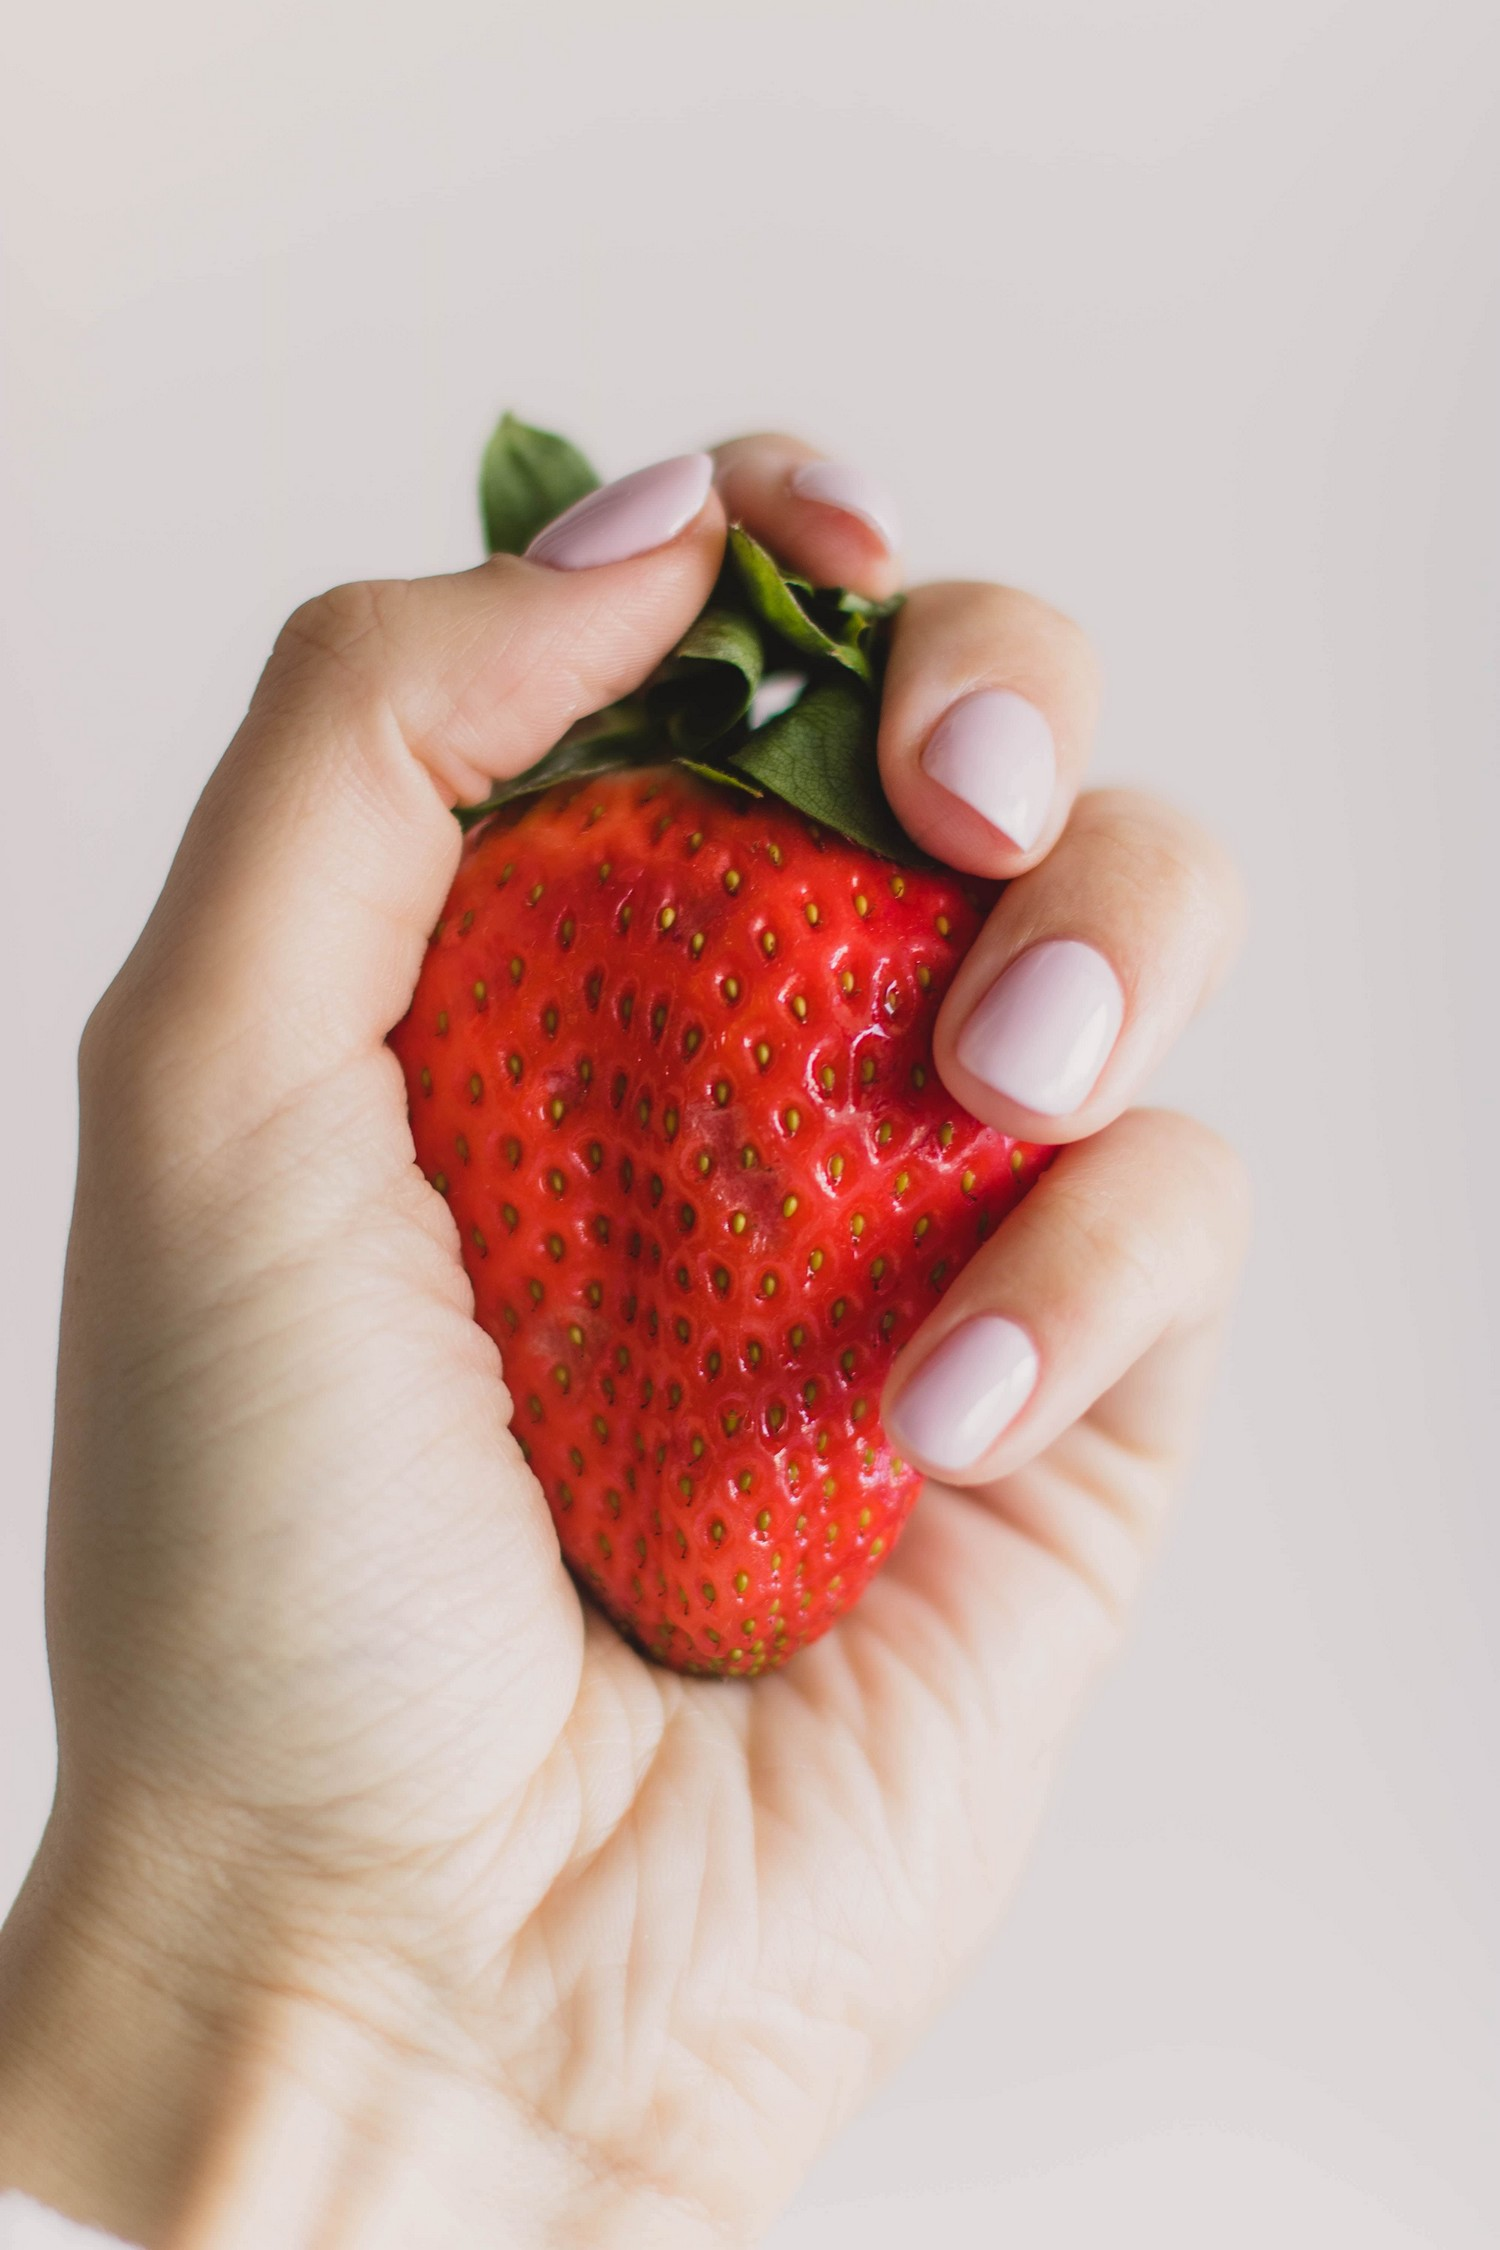 close up of a person holding a strawberry, which is proven to remove coffee stains from teeth.